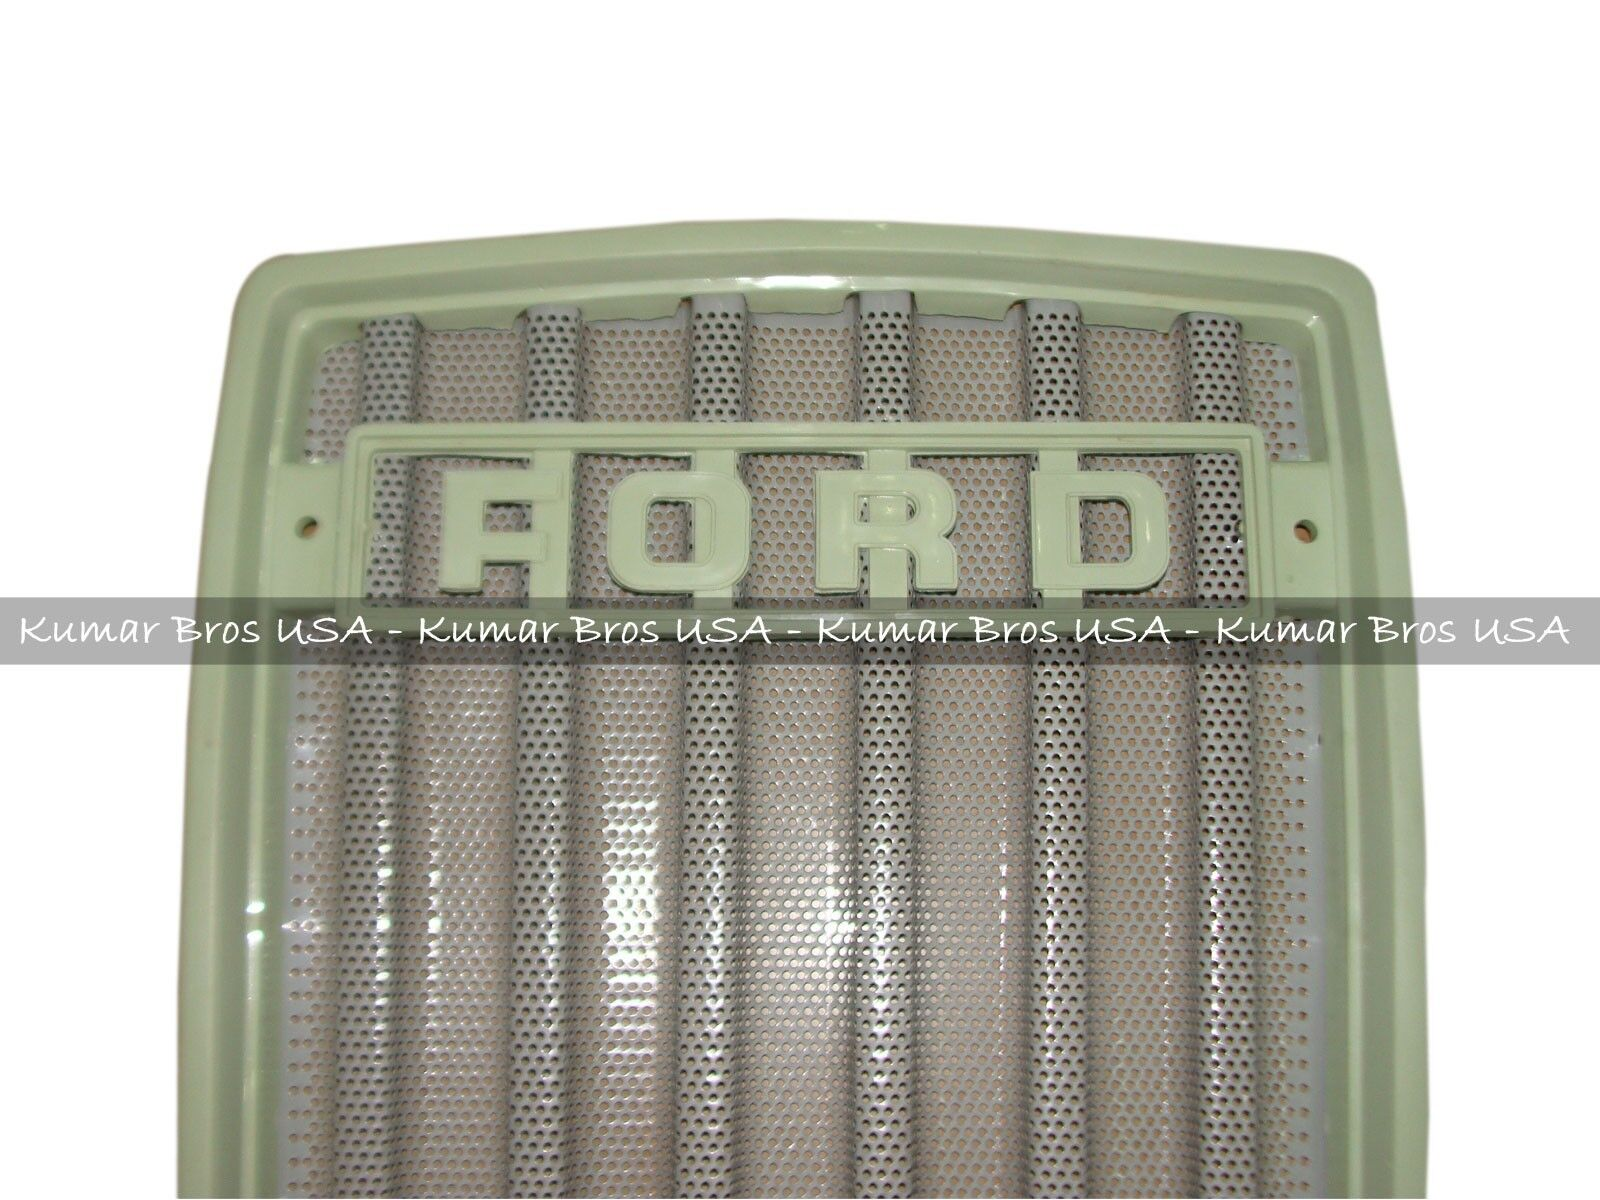 Ford 850 Tractor Serial Numbers : Ford tractor serial number and model identification